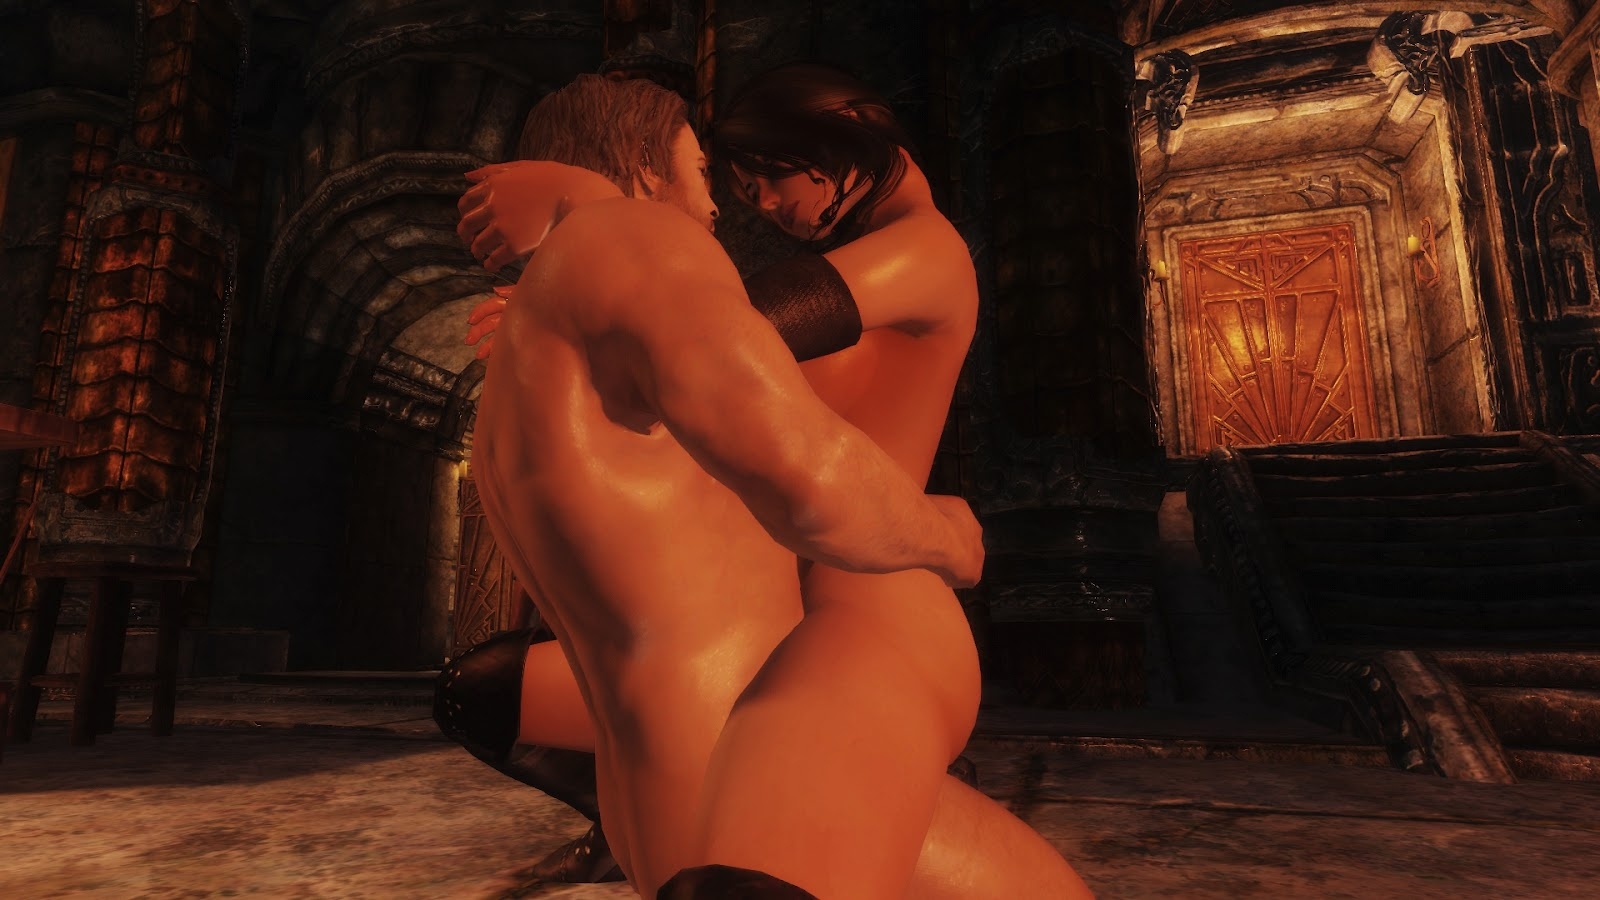 Hd game nude skins sex vintage woman